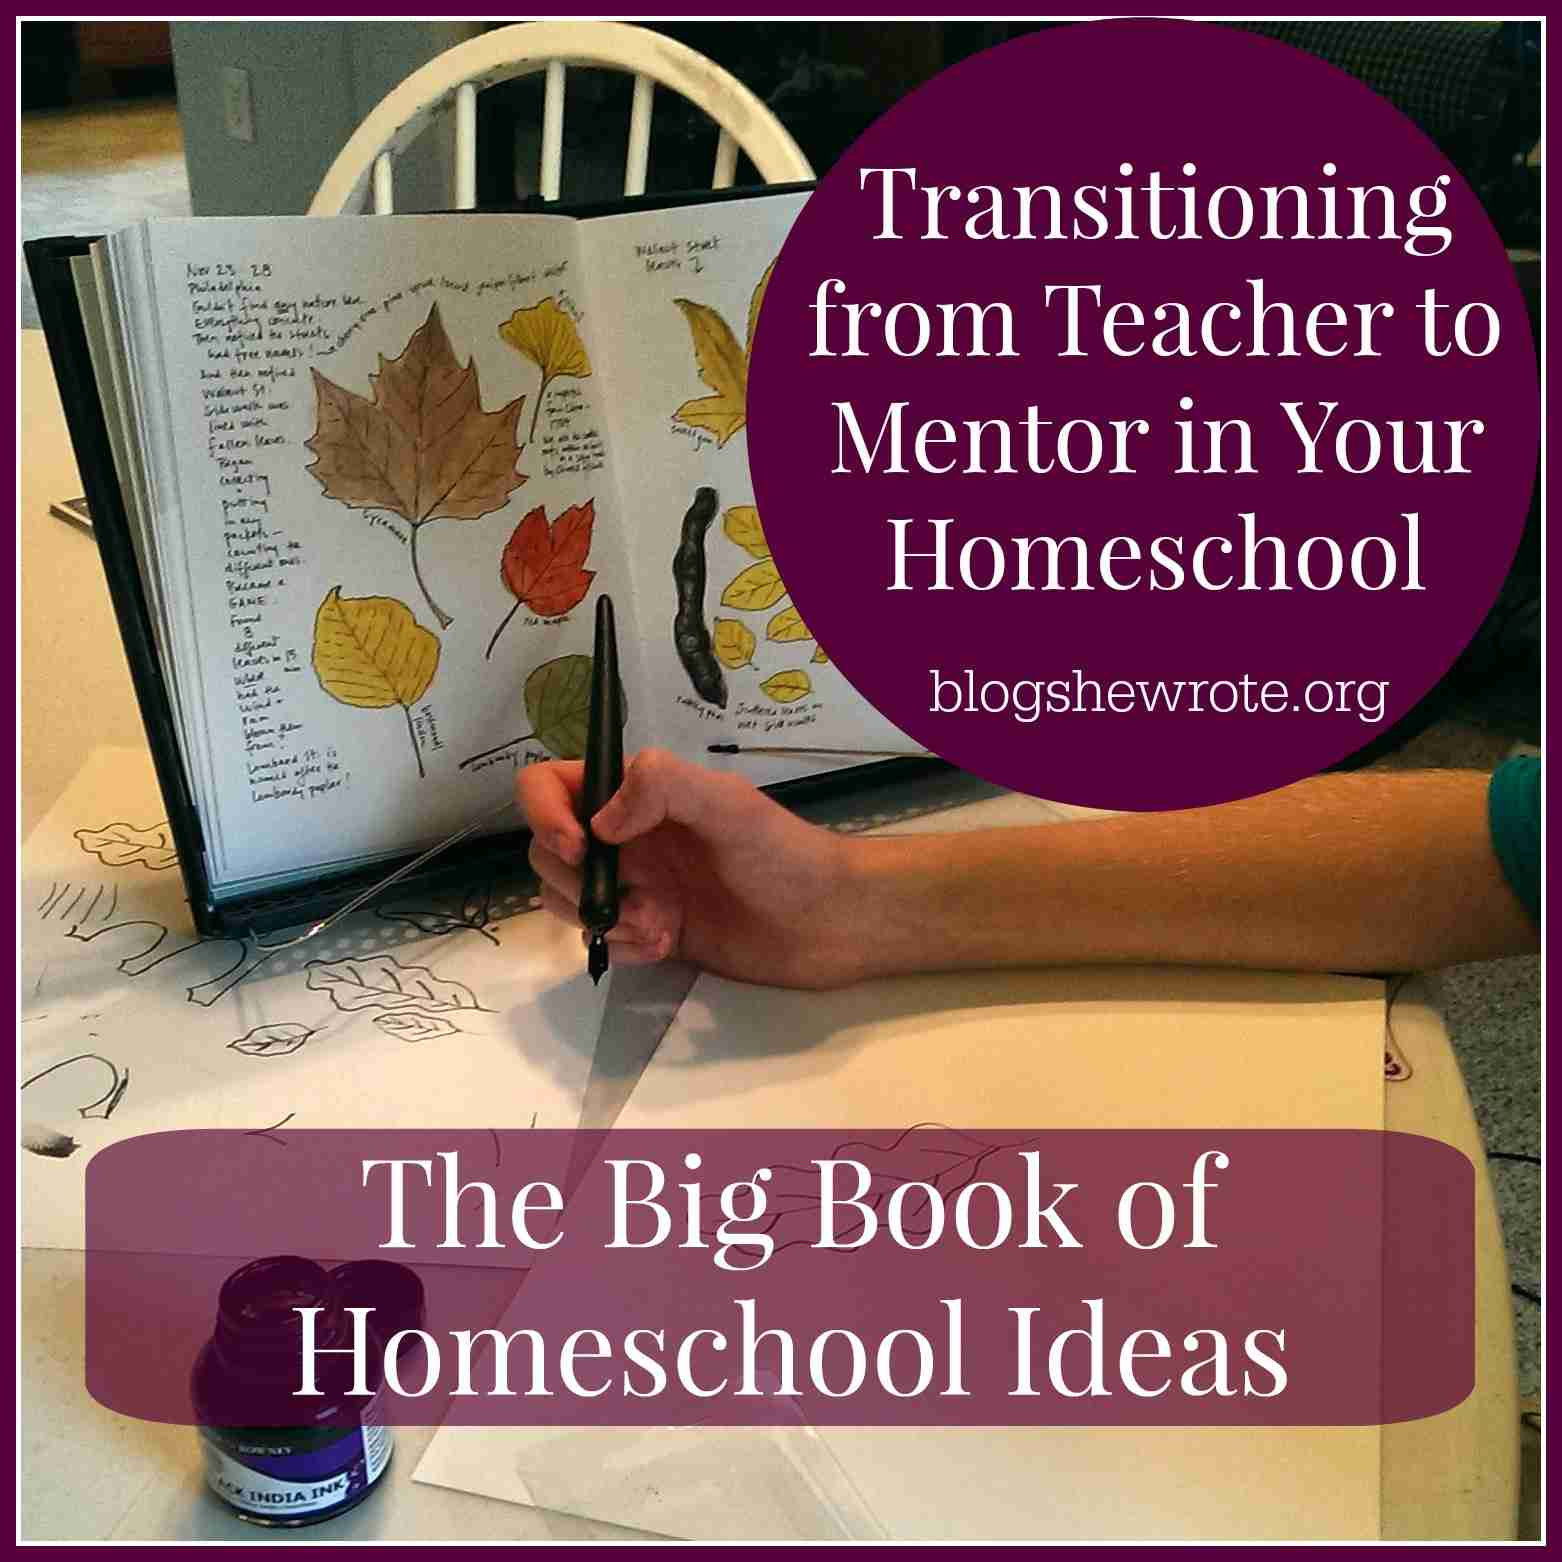 Blog, She Wrote: Transitioning from Teacher to Mentor in Your Homeschool & The Big Book of Homeschool Ideas